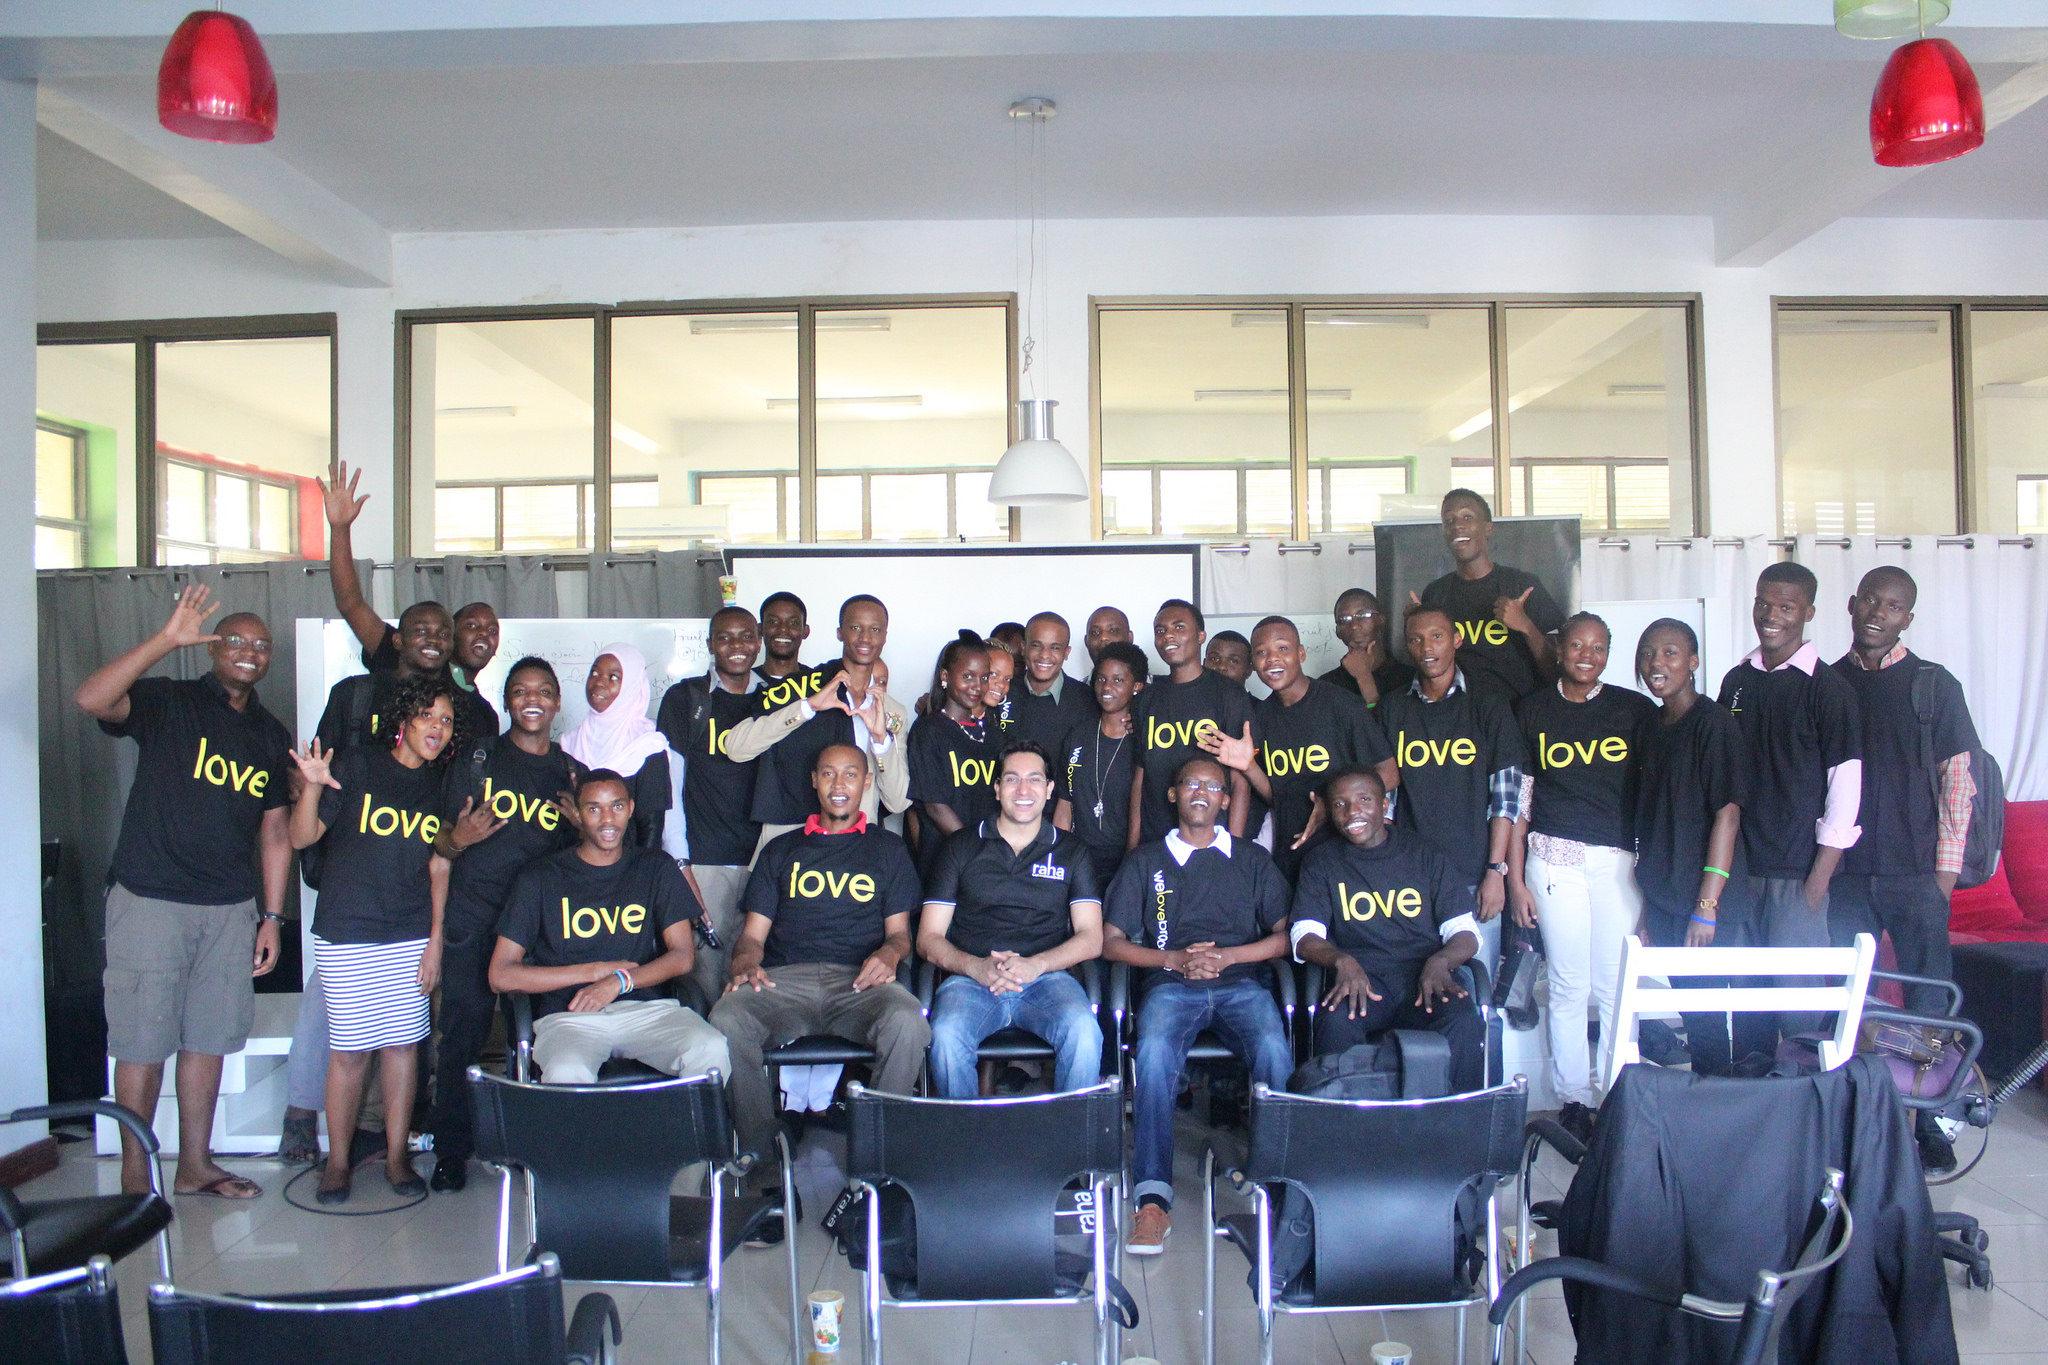 Participants in the Tanzania Super Social Networkers Project show some LOVE for Buni Hub.